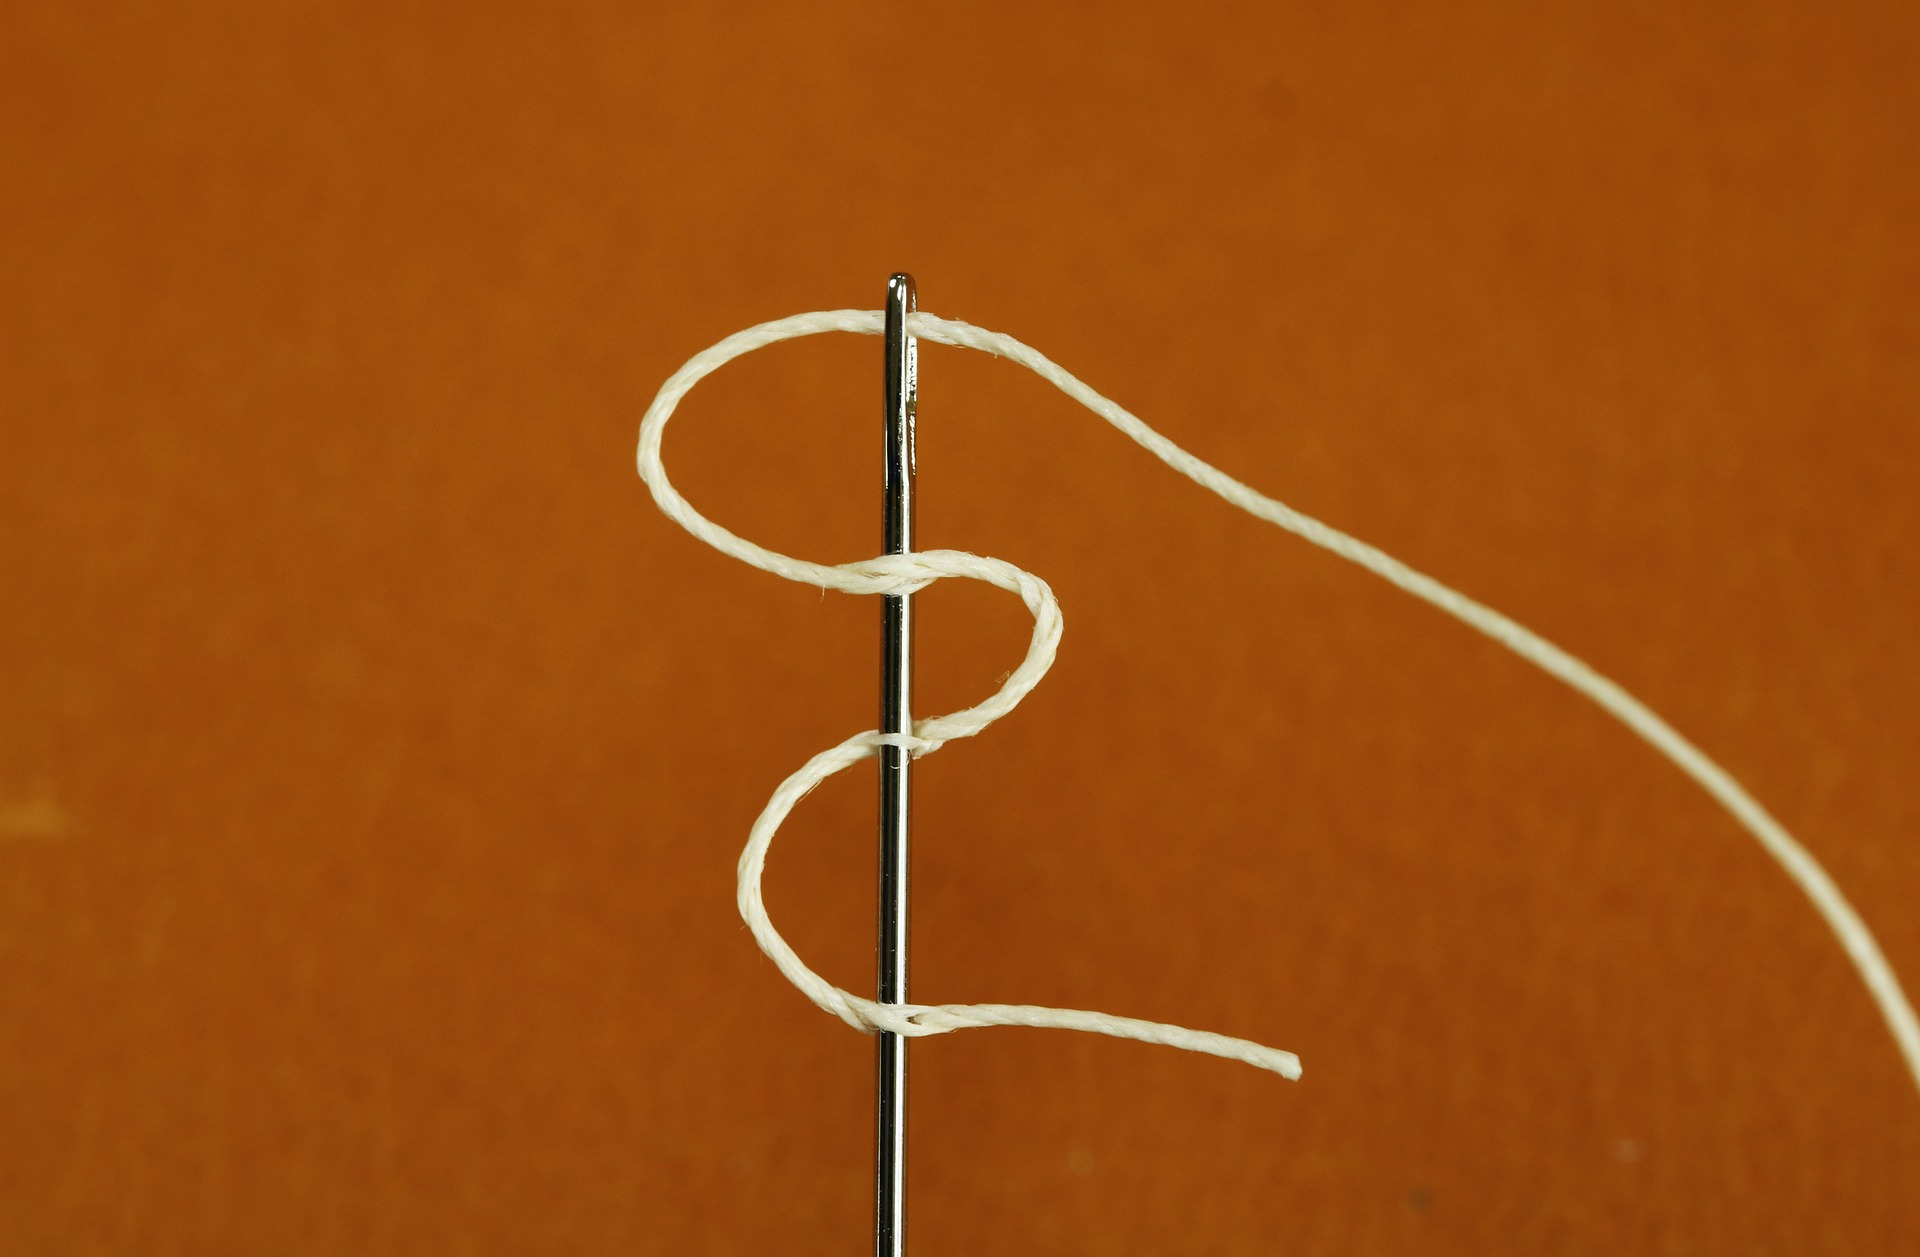 Inside the hole of the best hand sewing needle is a white thread